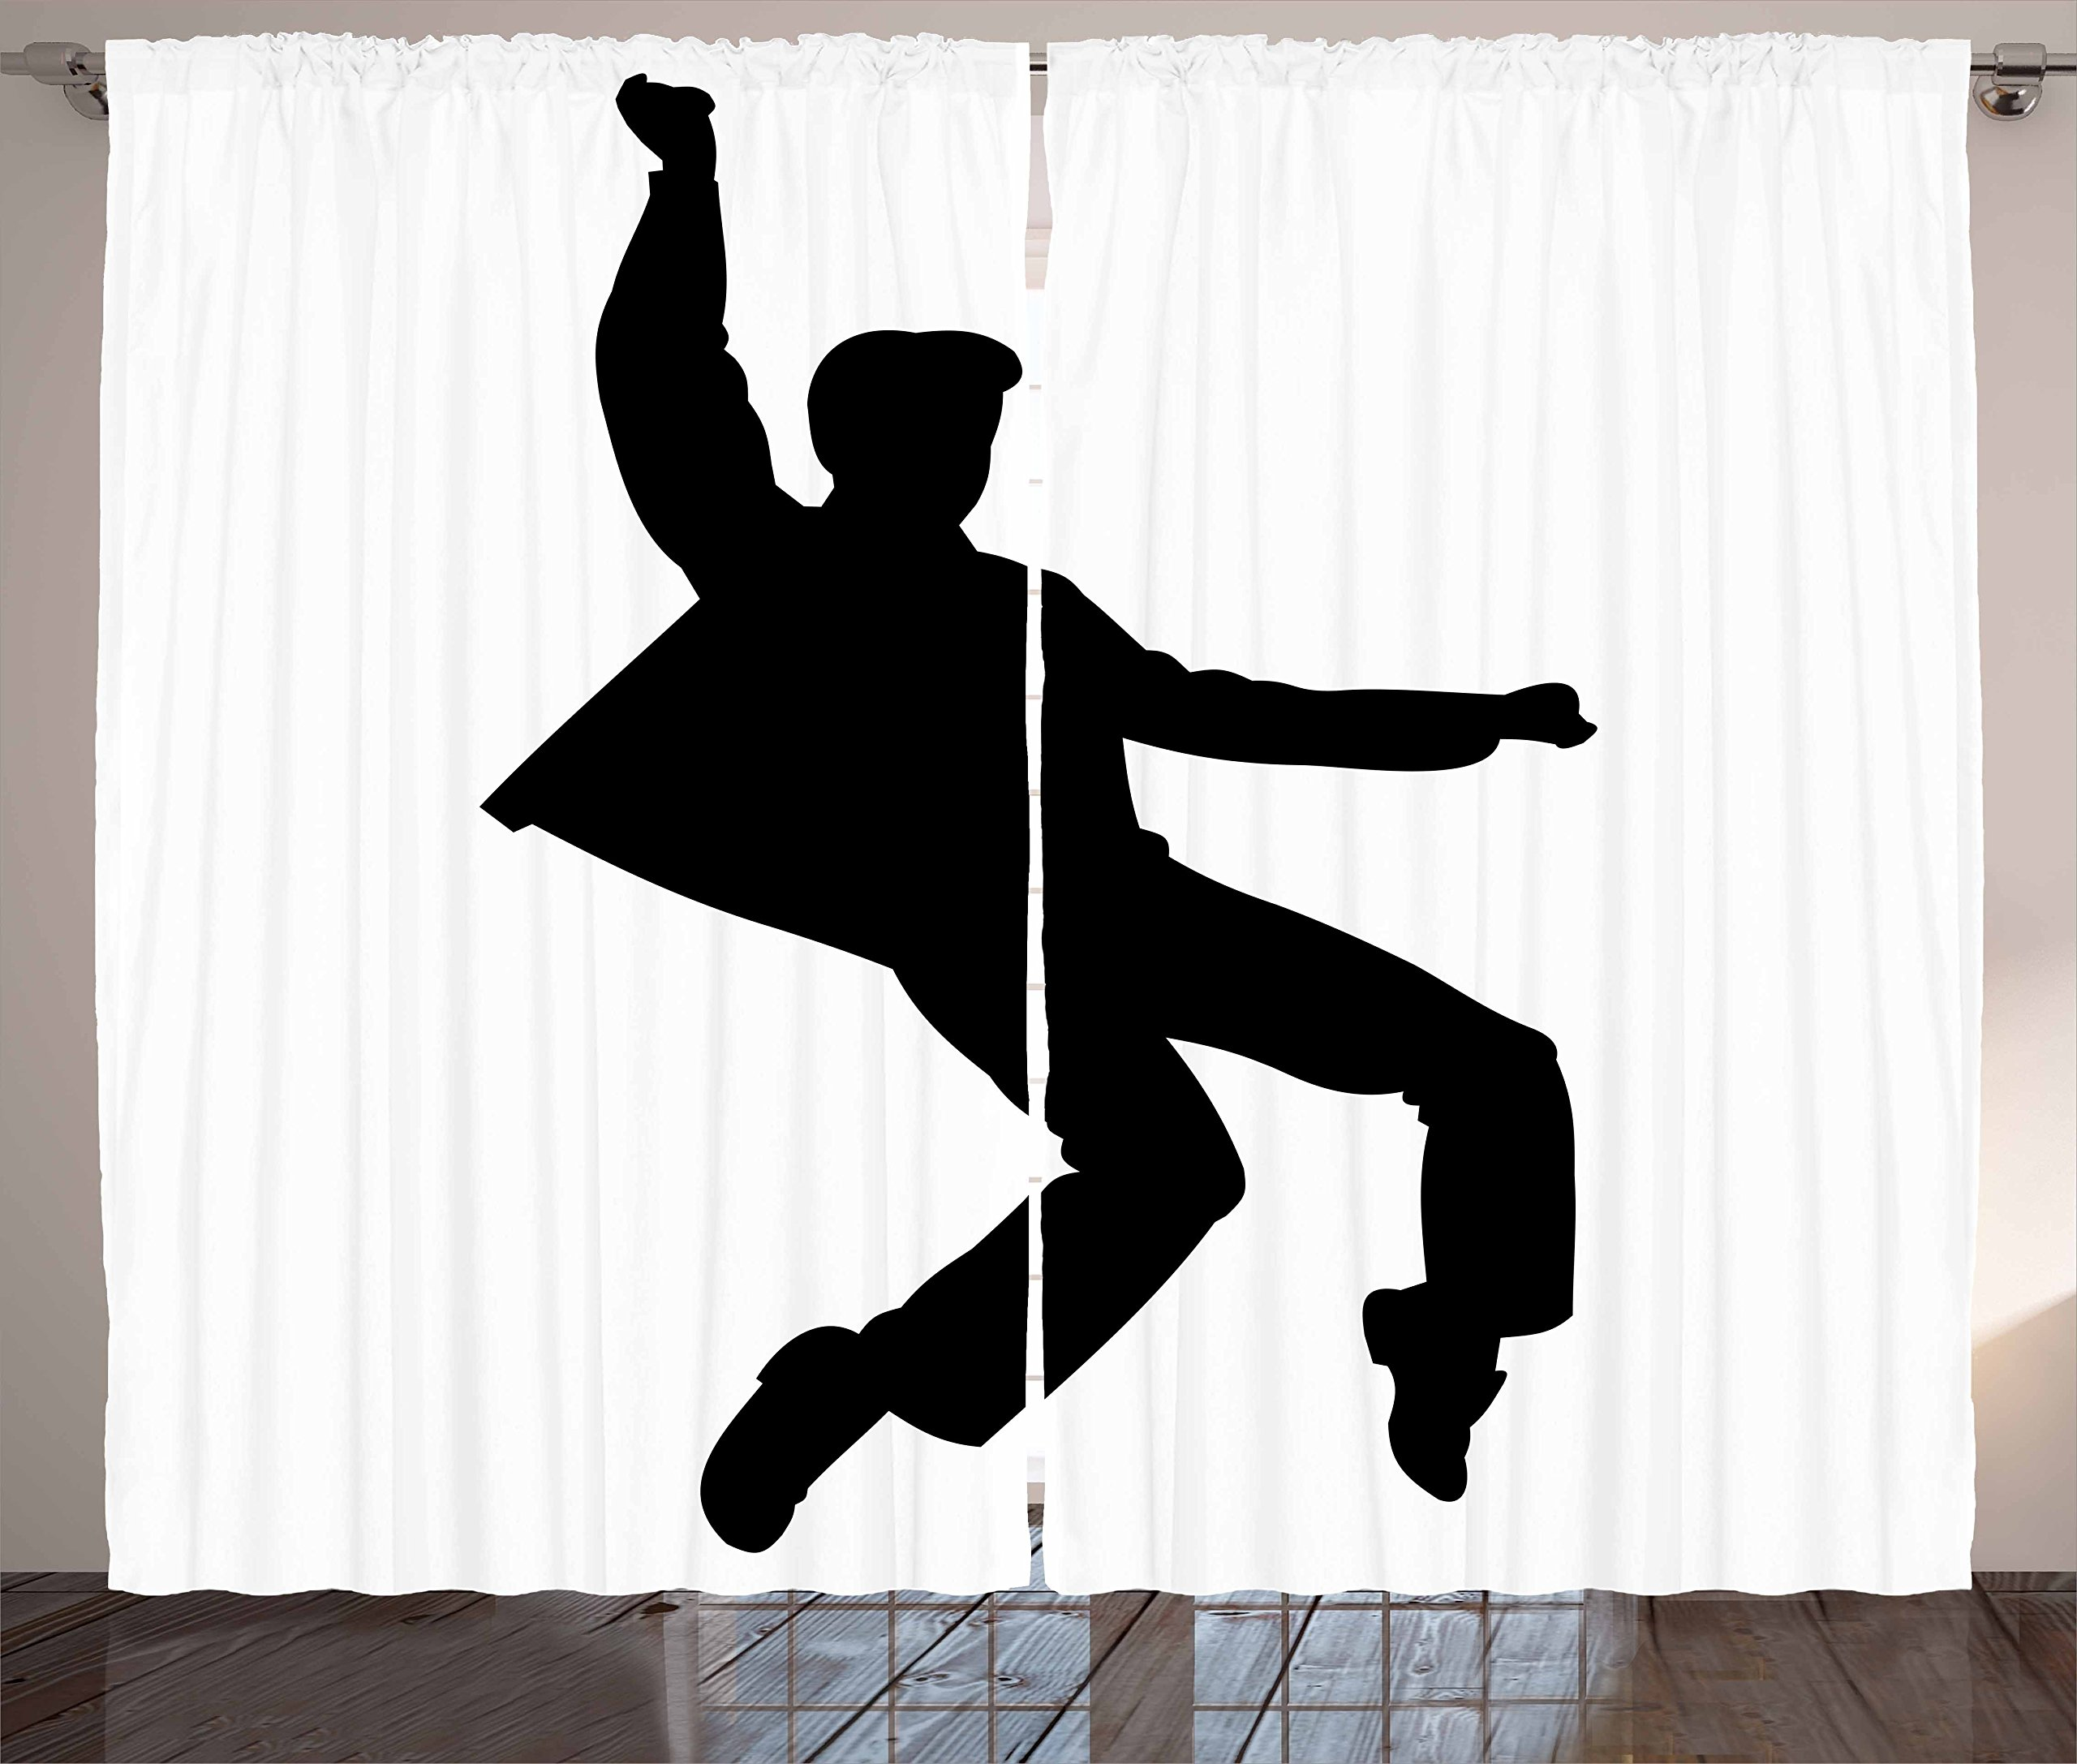 Elvis Presley Decor Curtains by Ambesonne, Popular Artist Doing Iconic Dance Moves Rock'n Roll Music Famous, Living Room Bedroom Window Drapes 2 Panel Set, 108 W X 63 L Inches, Black and White